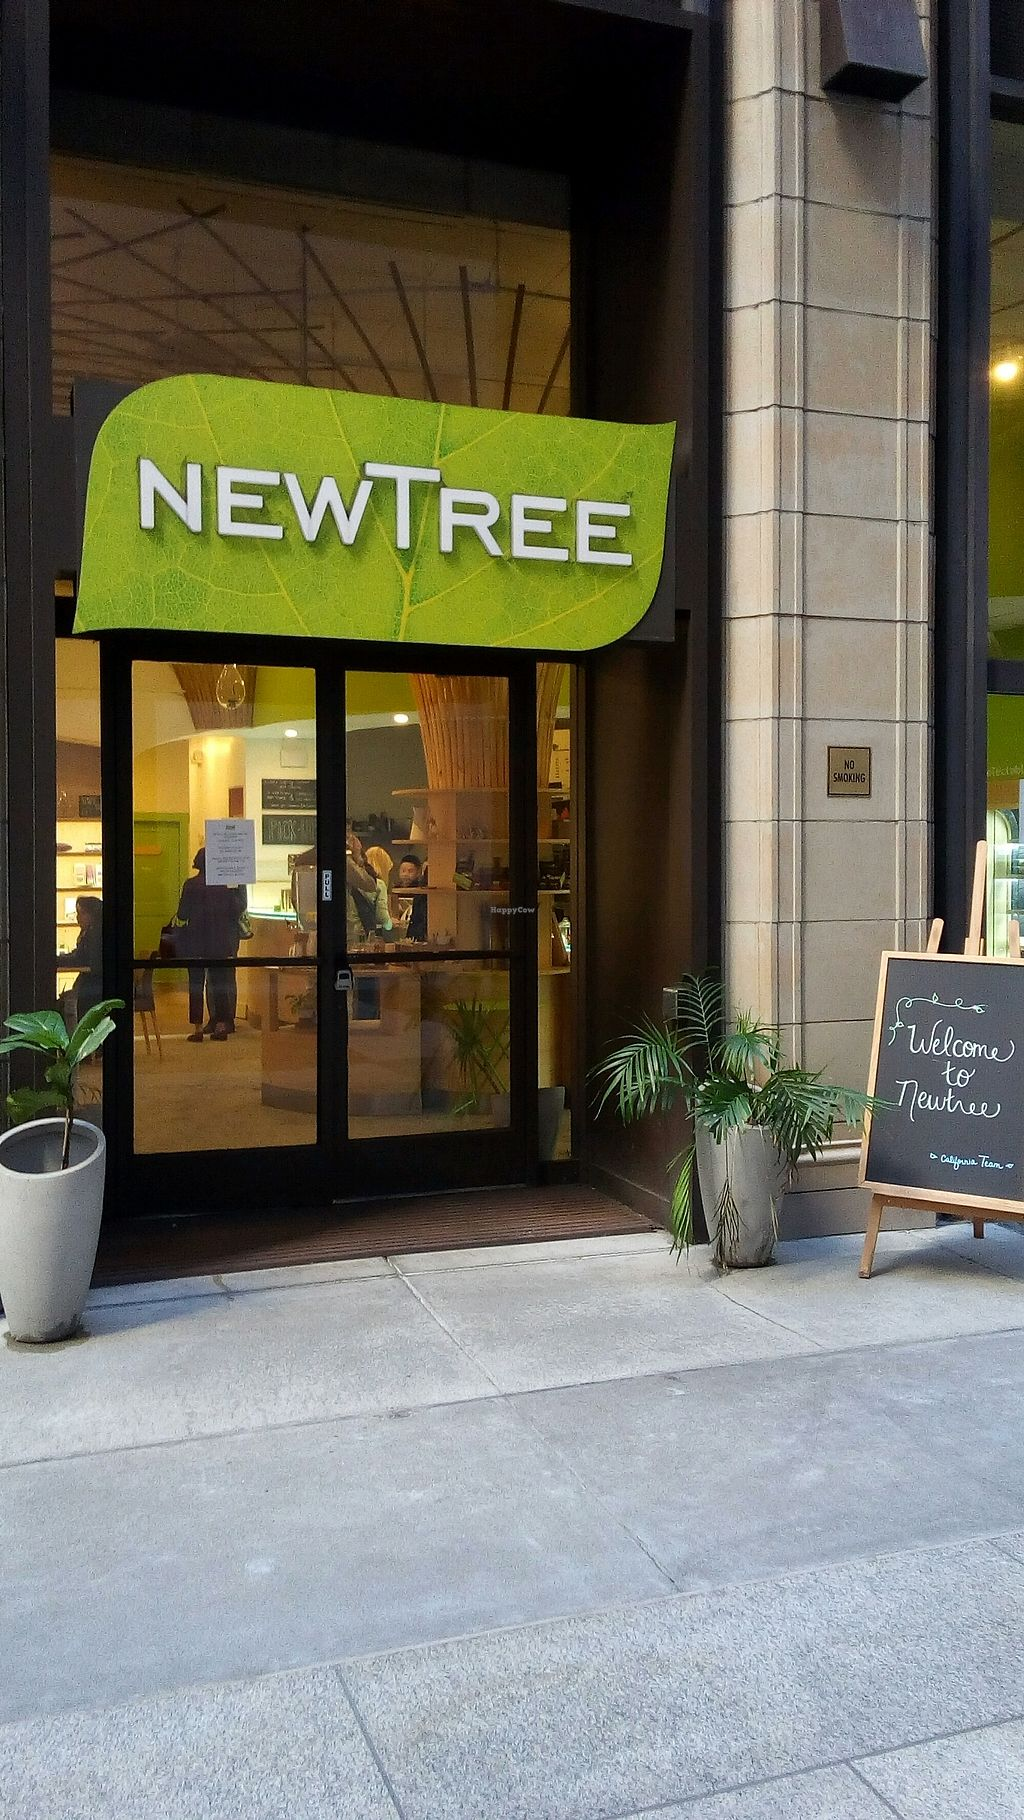 """Photo of NewTree Cafe and Chocolate Shop  by <a href=""""/members/profile/melarish"""">melarish</a> <br/>entrance <br/> December 20, 2017  - <a href='/contact/abuse/image/59193/337583'>Report</a>"""